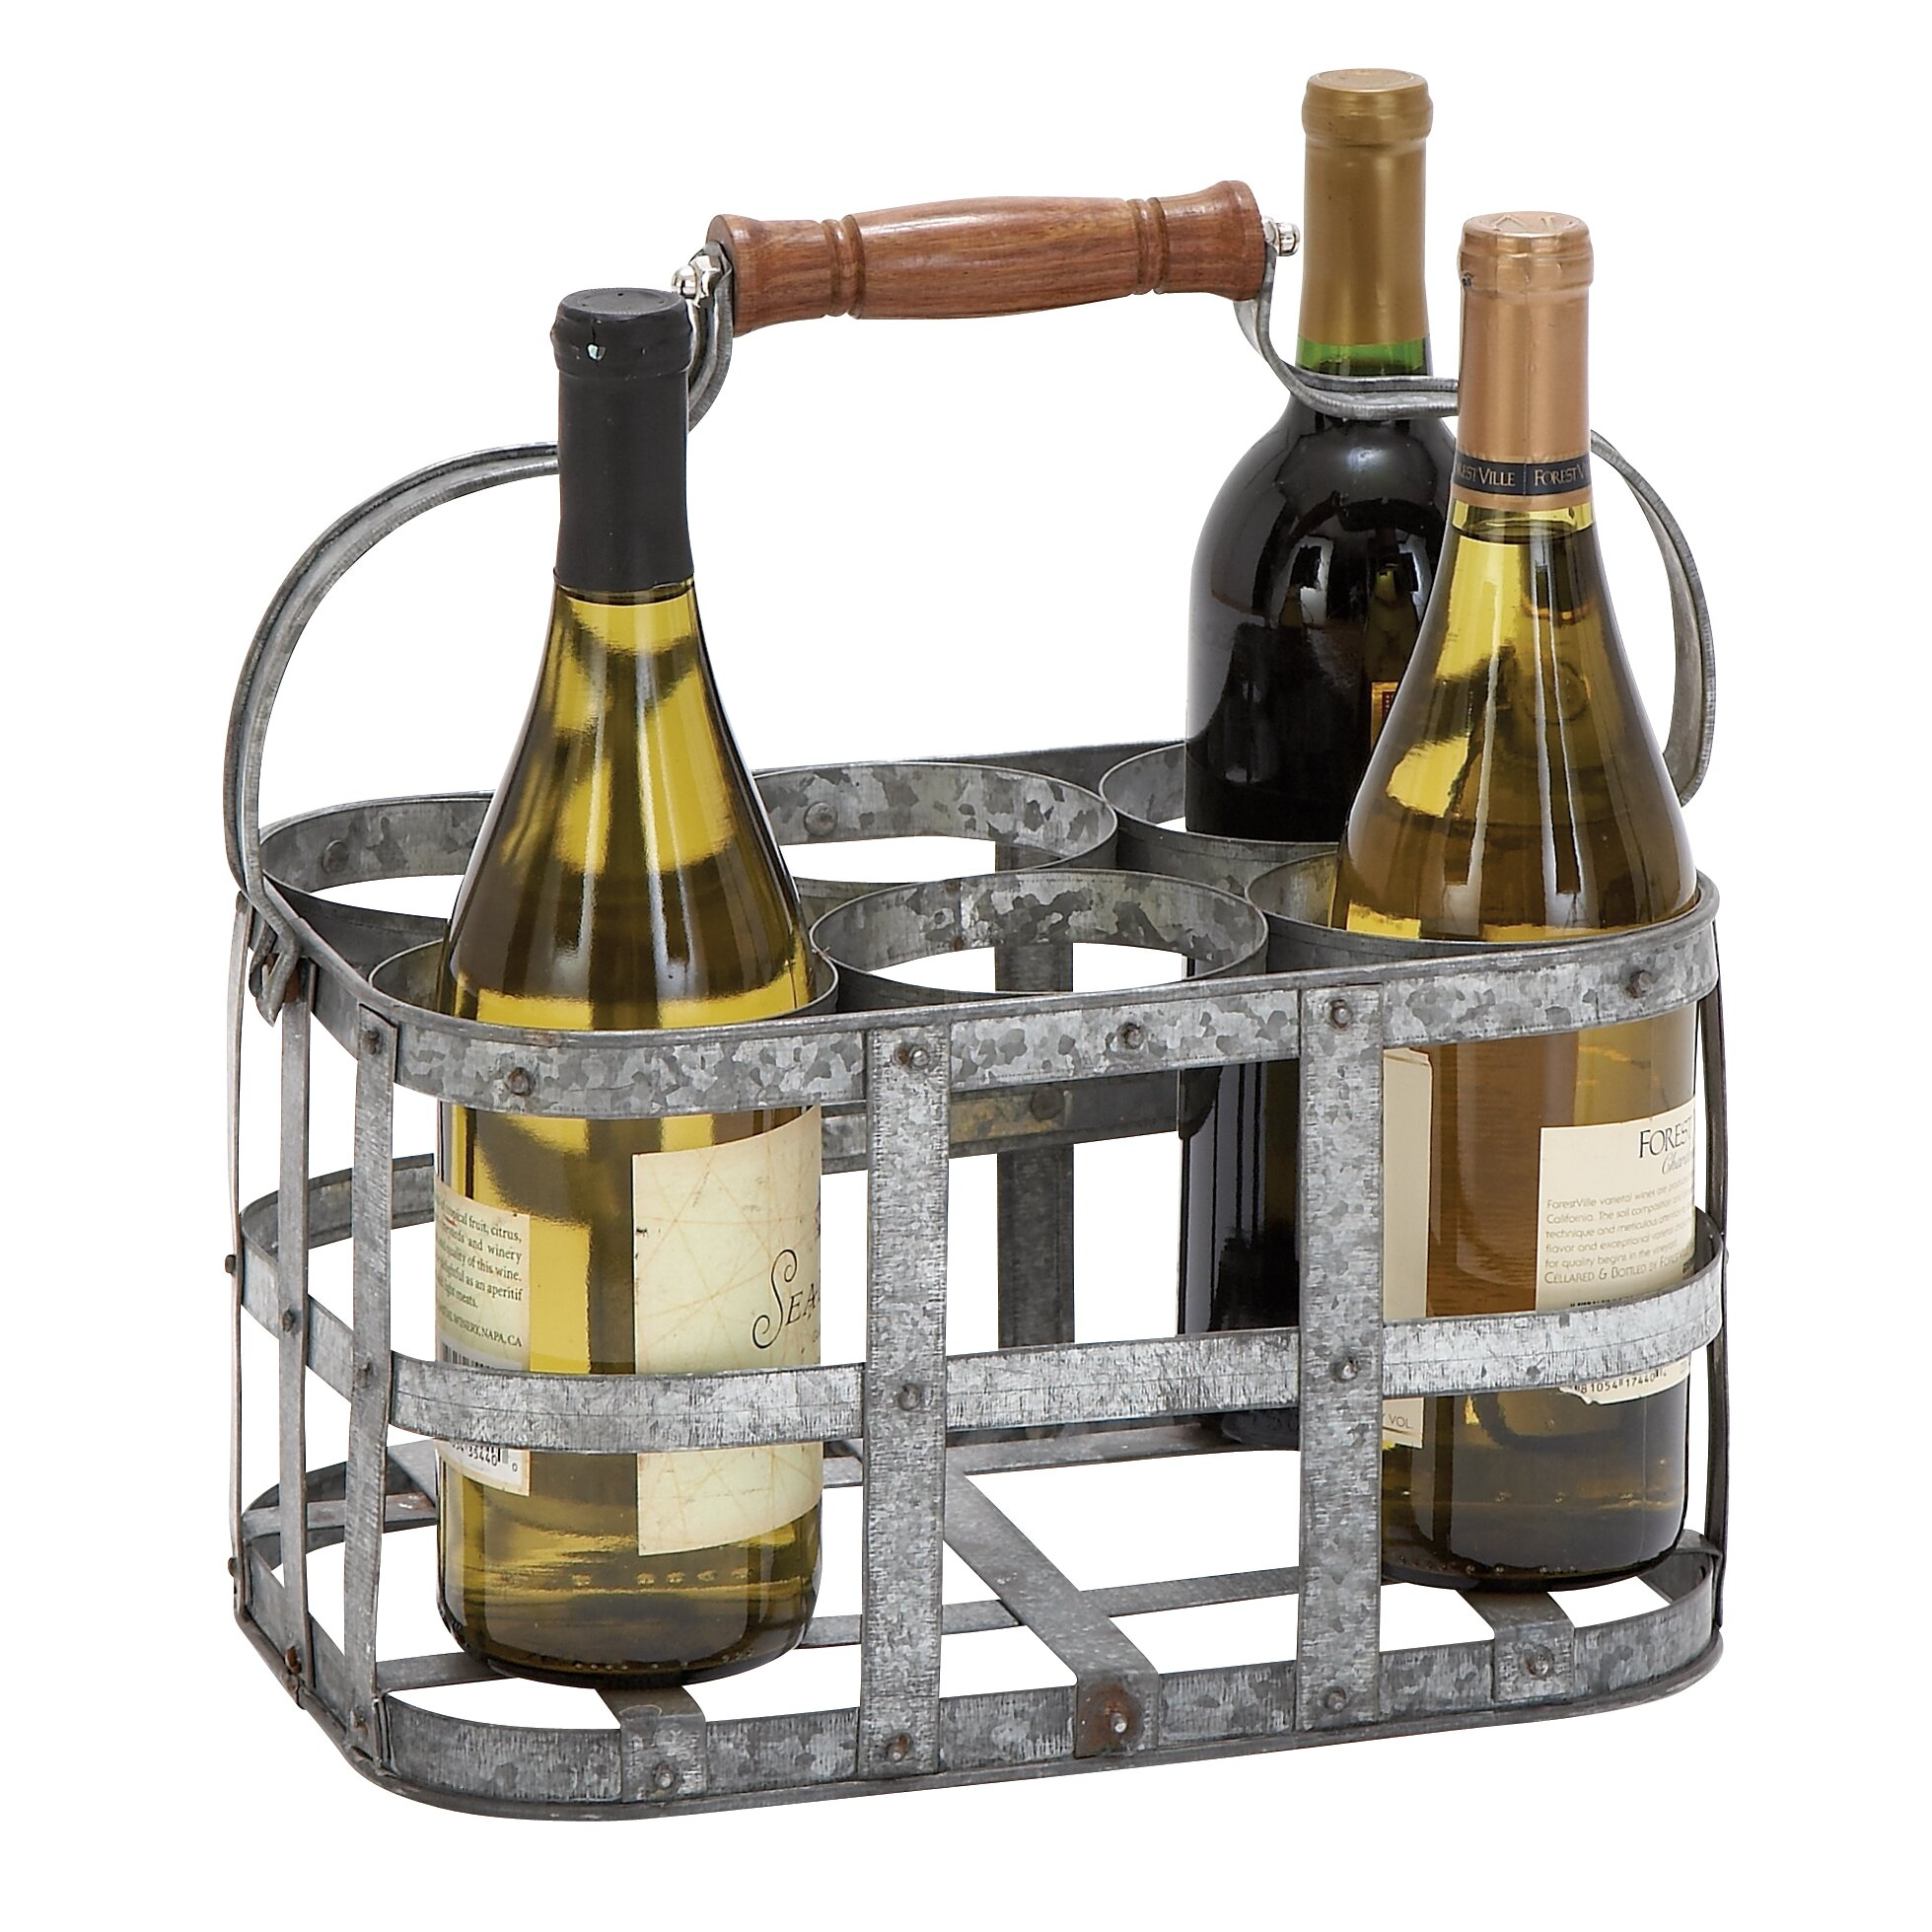 Cole grey 6 bottle tabletop wine rack reviews wayfair for Kitchen 1883 reviews